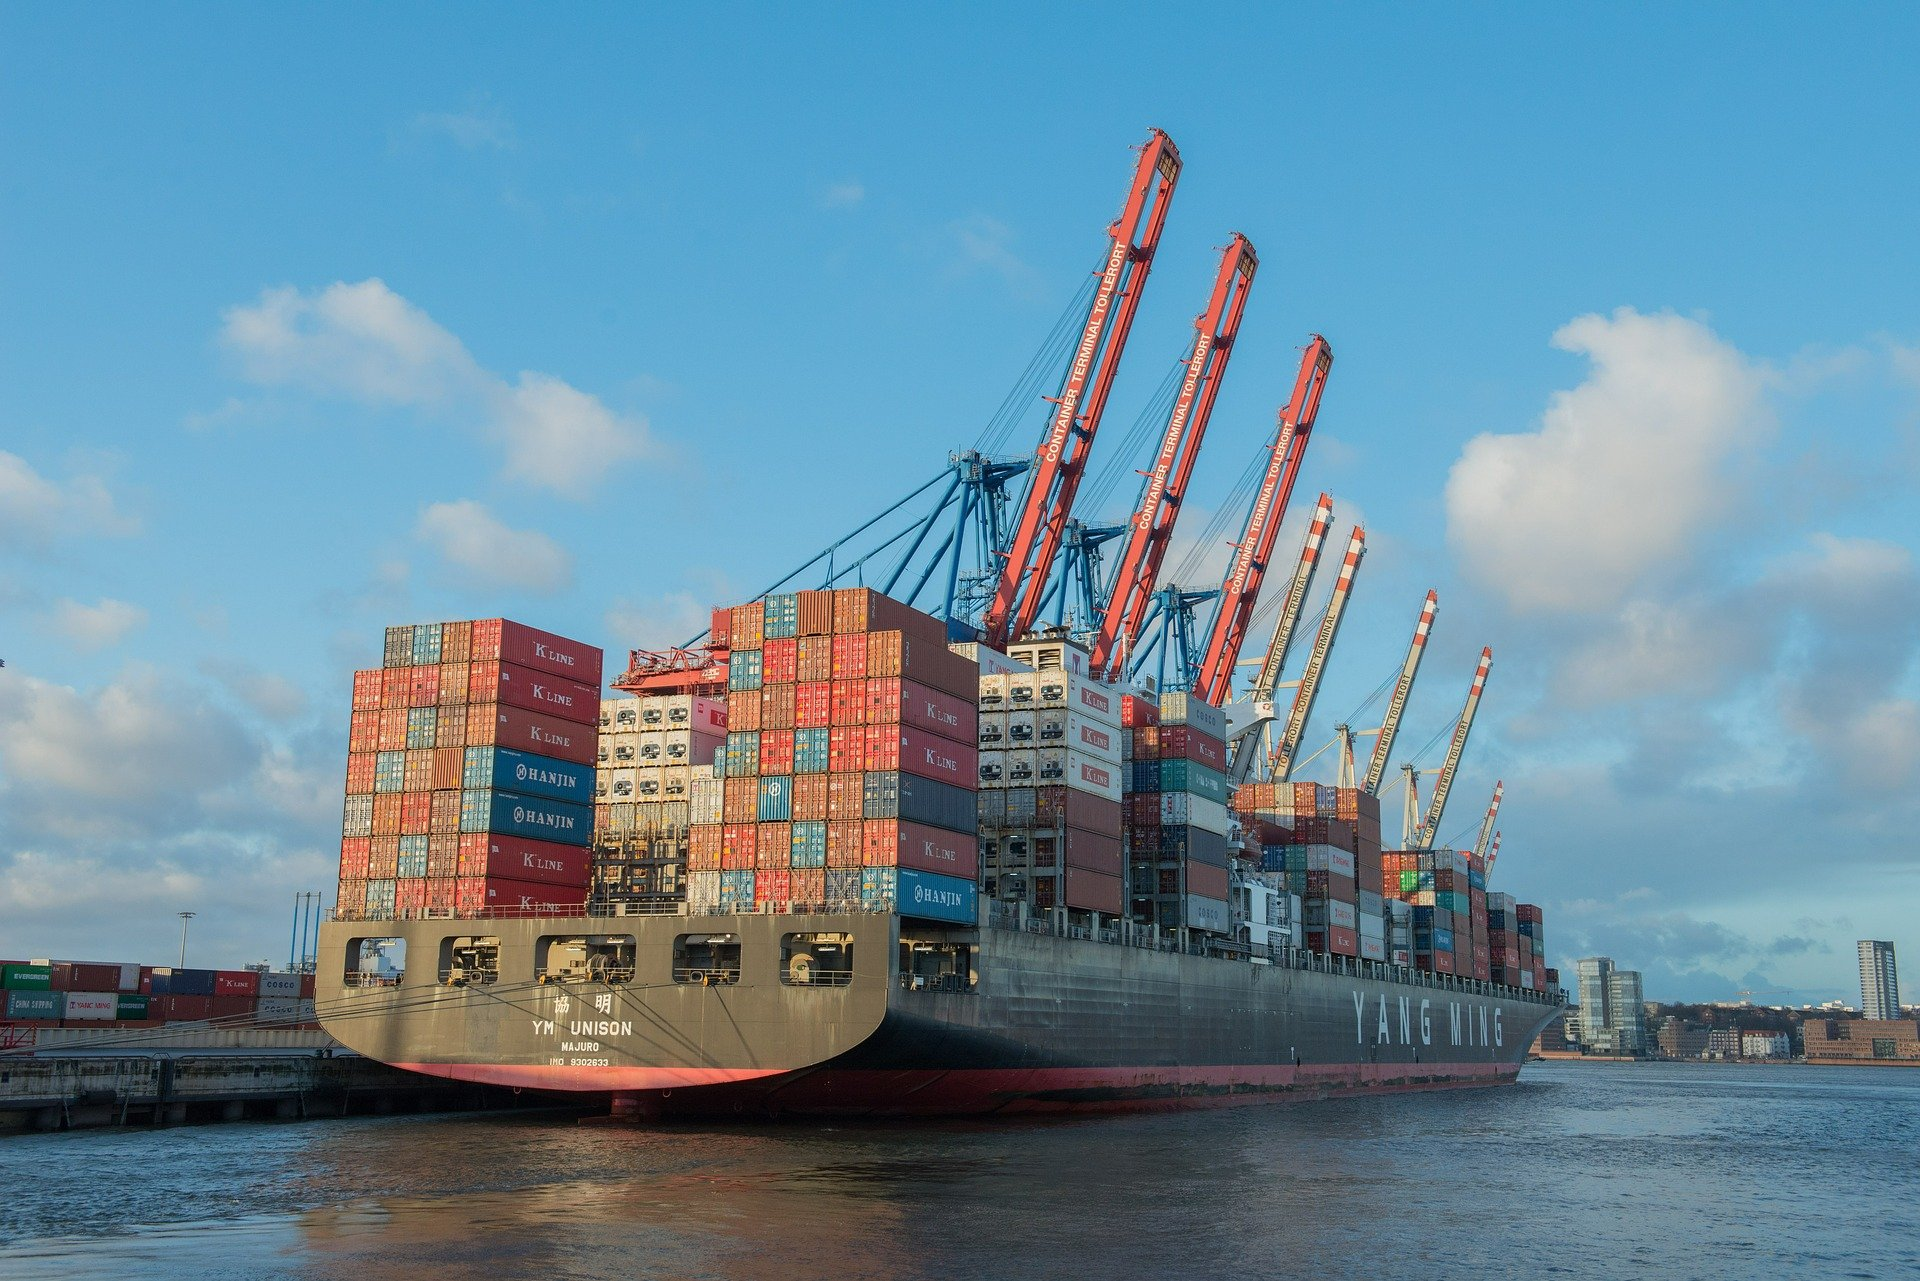 container-ship-596083_1920.jpg